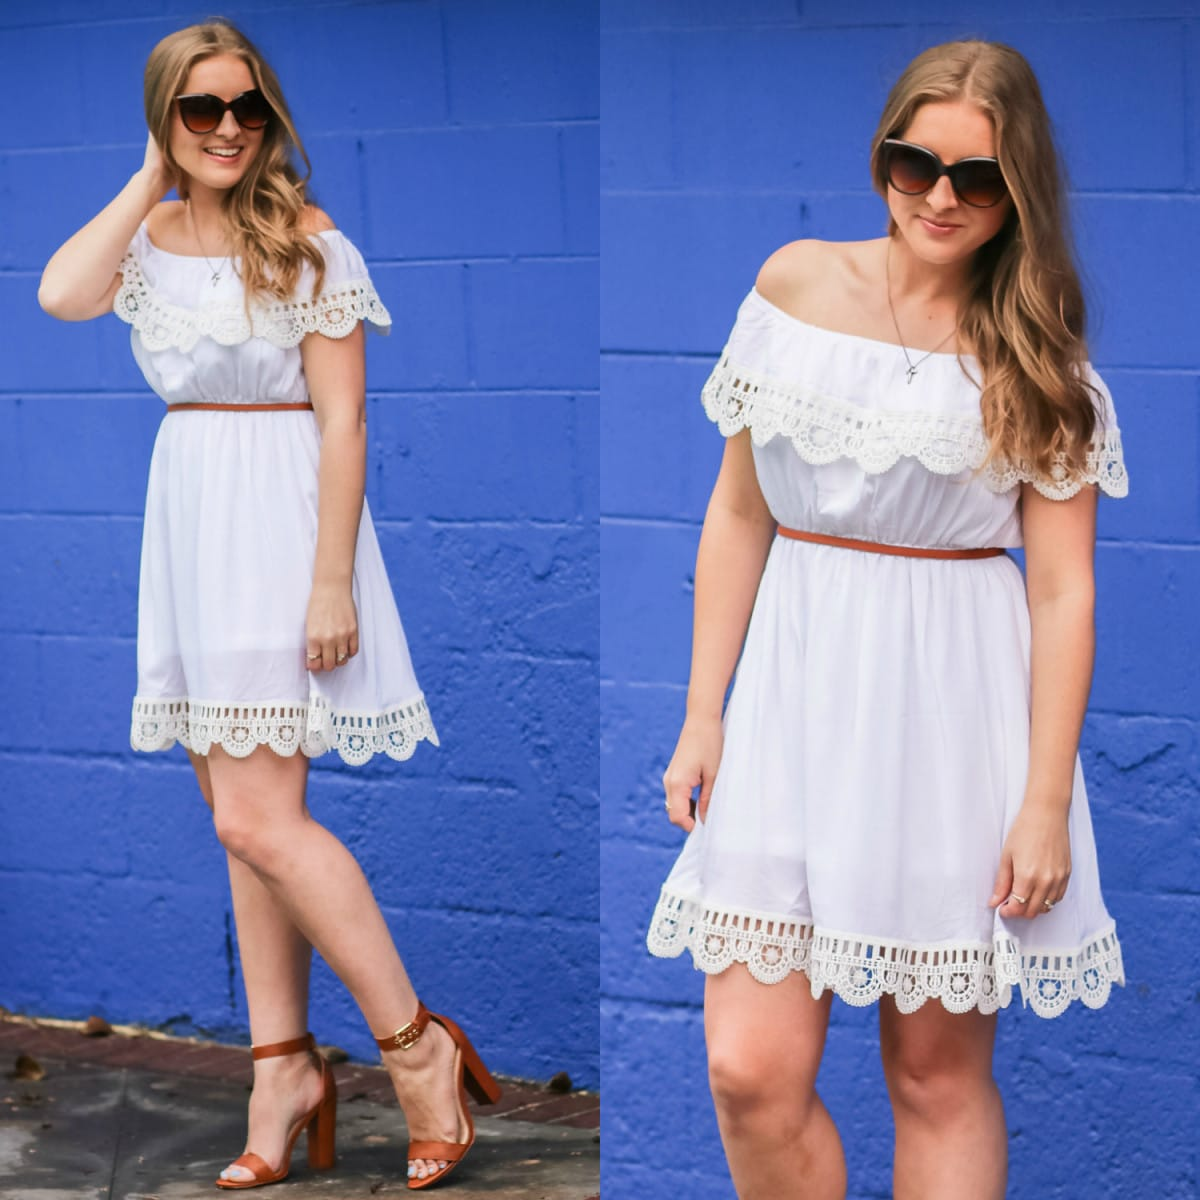 Sheinside affordable white off-the-shoulder dress styled by Ashley Brooke Nicholas at the Pacific Edge Hotel in Laguna Beach, California